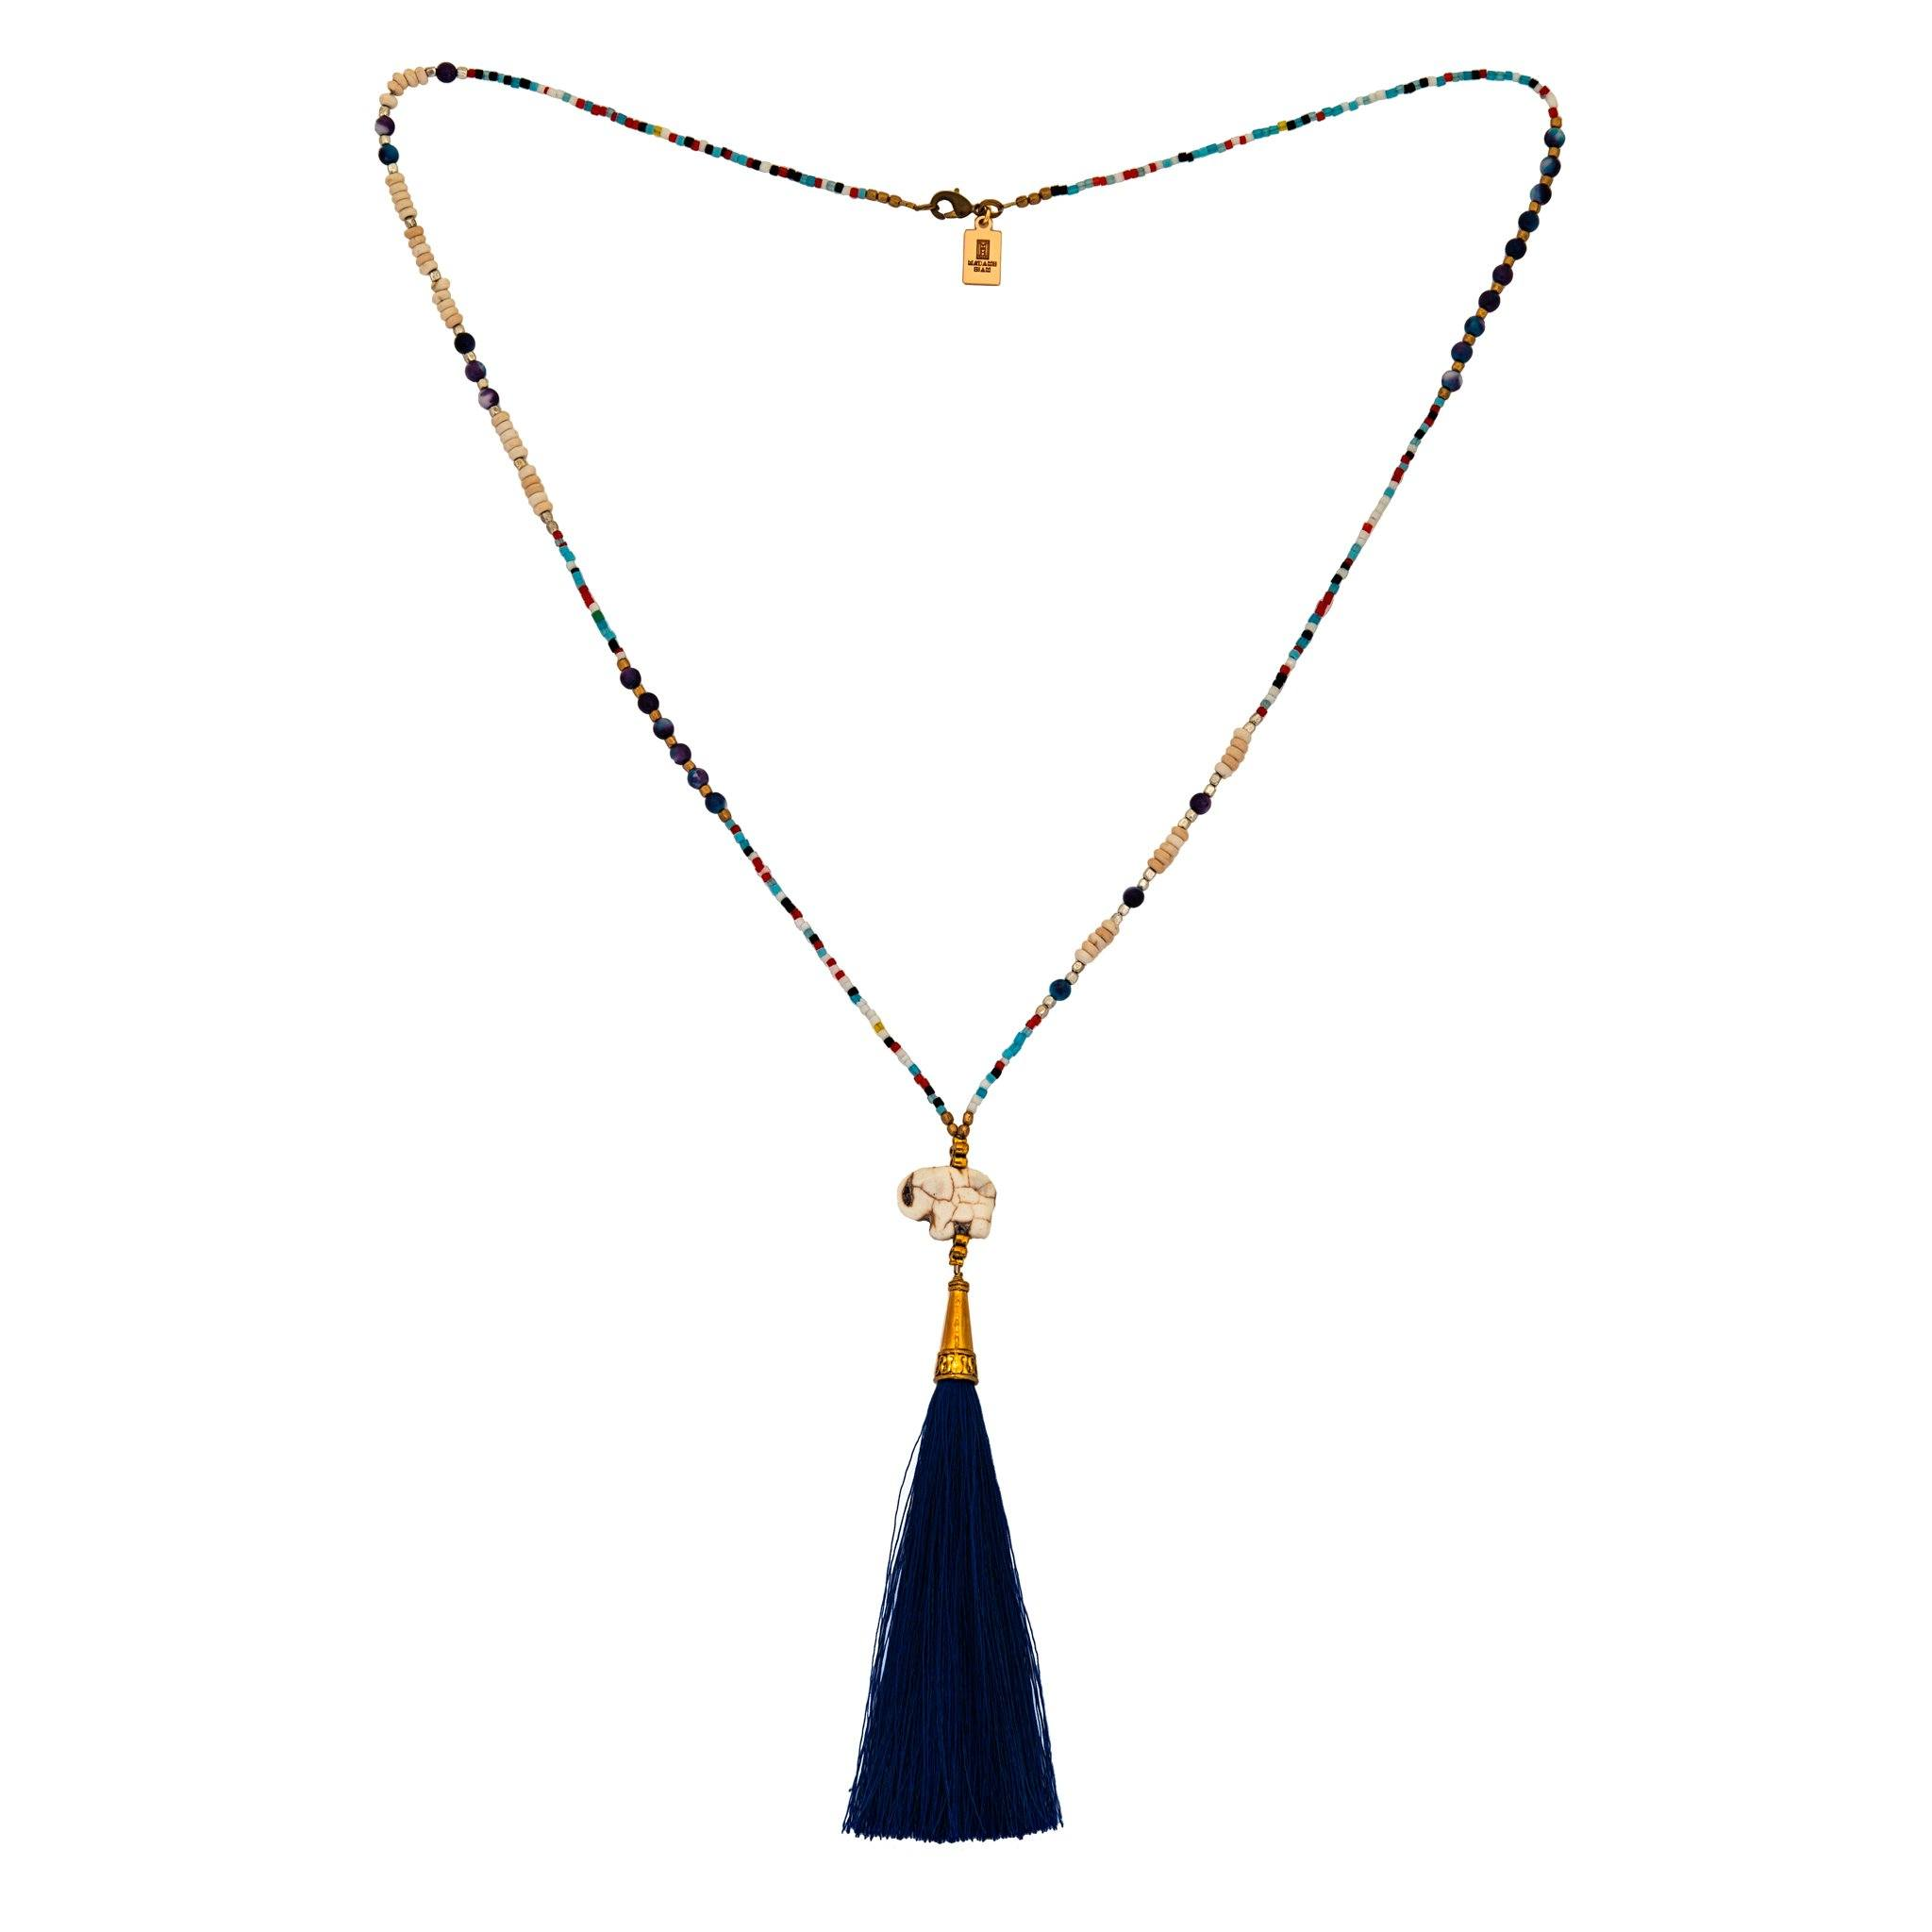 CHANG blue tassel necklace